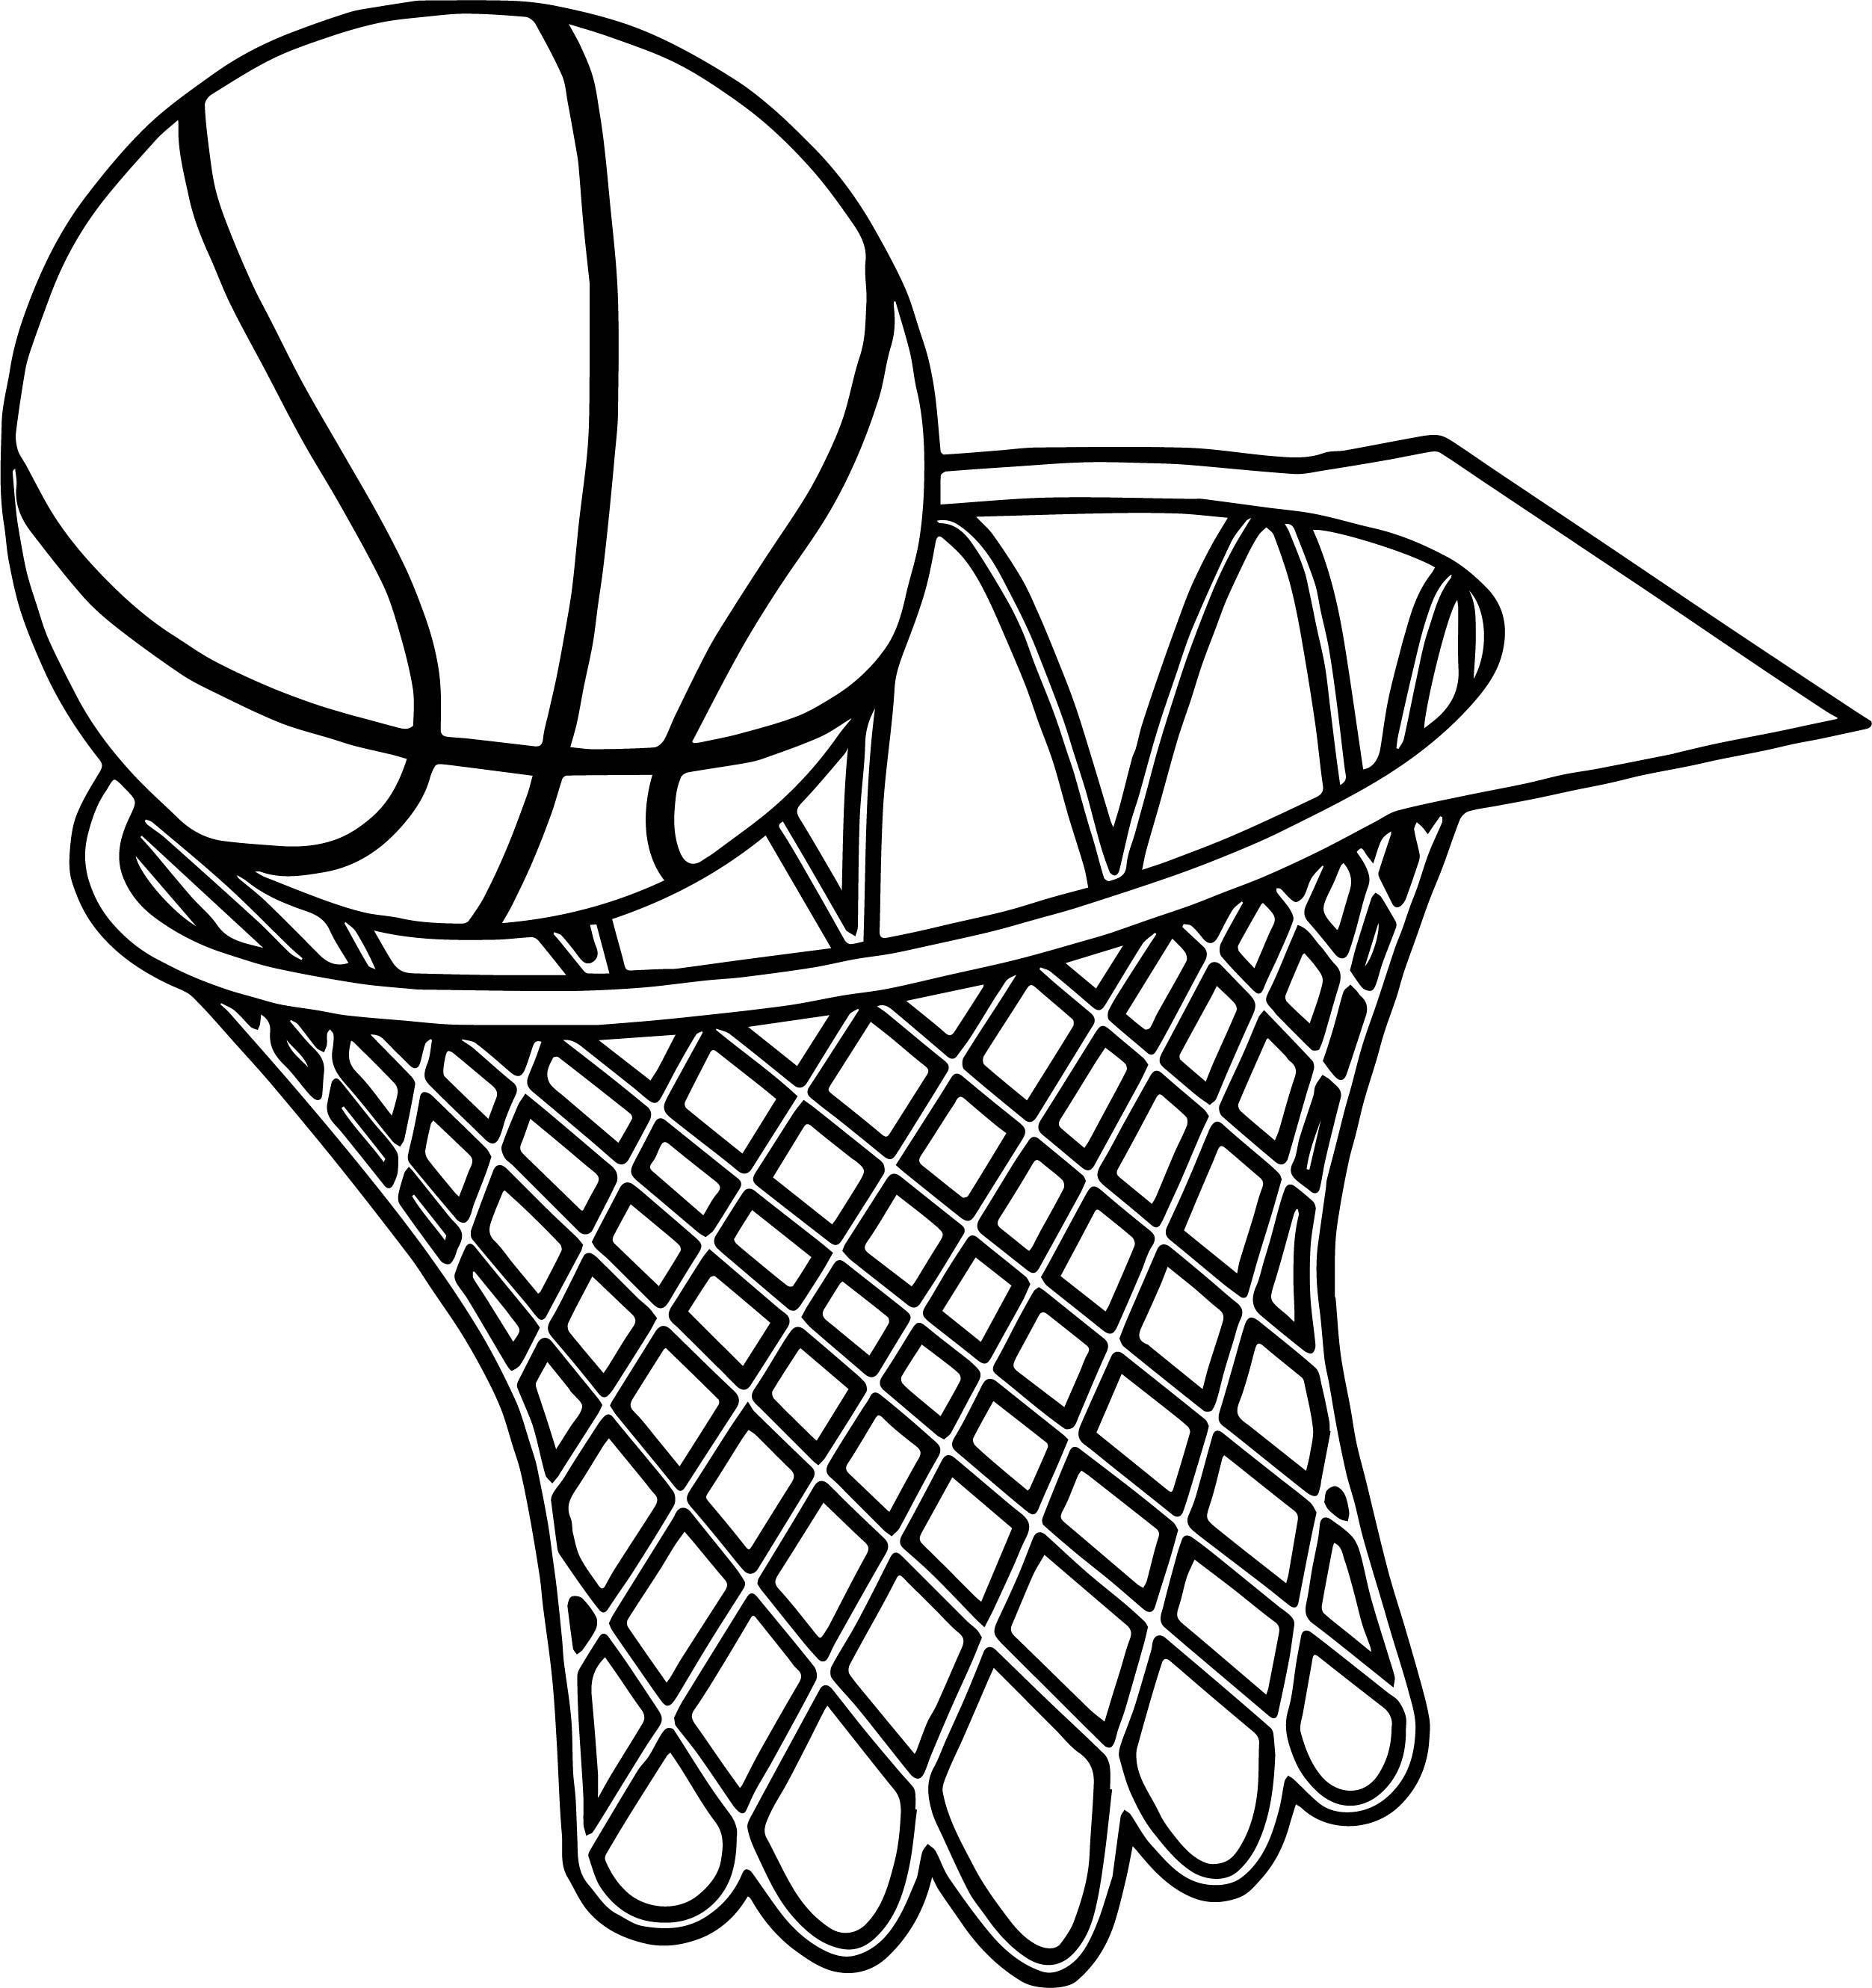 basketball coloring page free and fun basketball color pages for kids 101 activity basketball page coloring